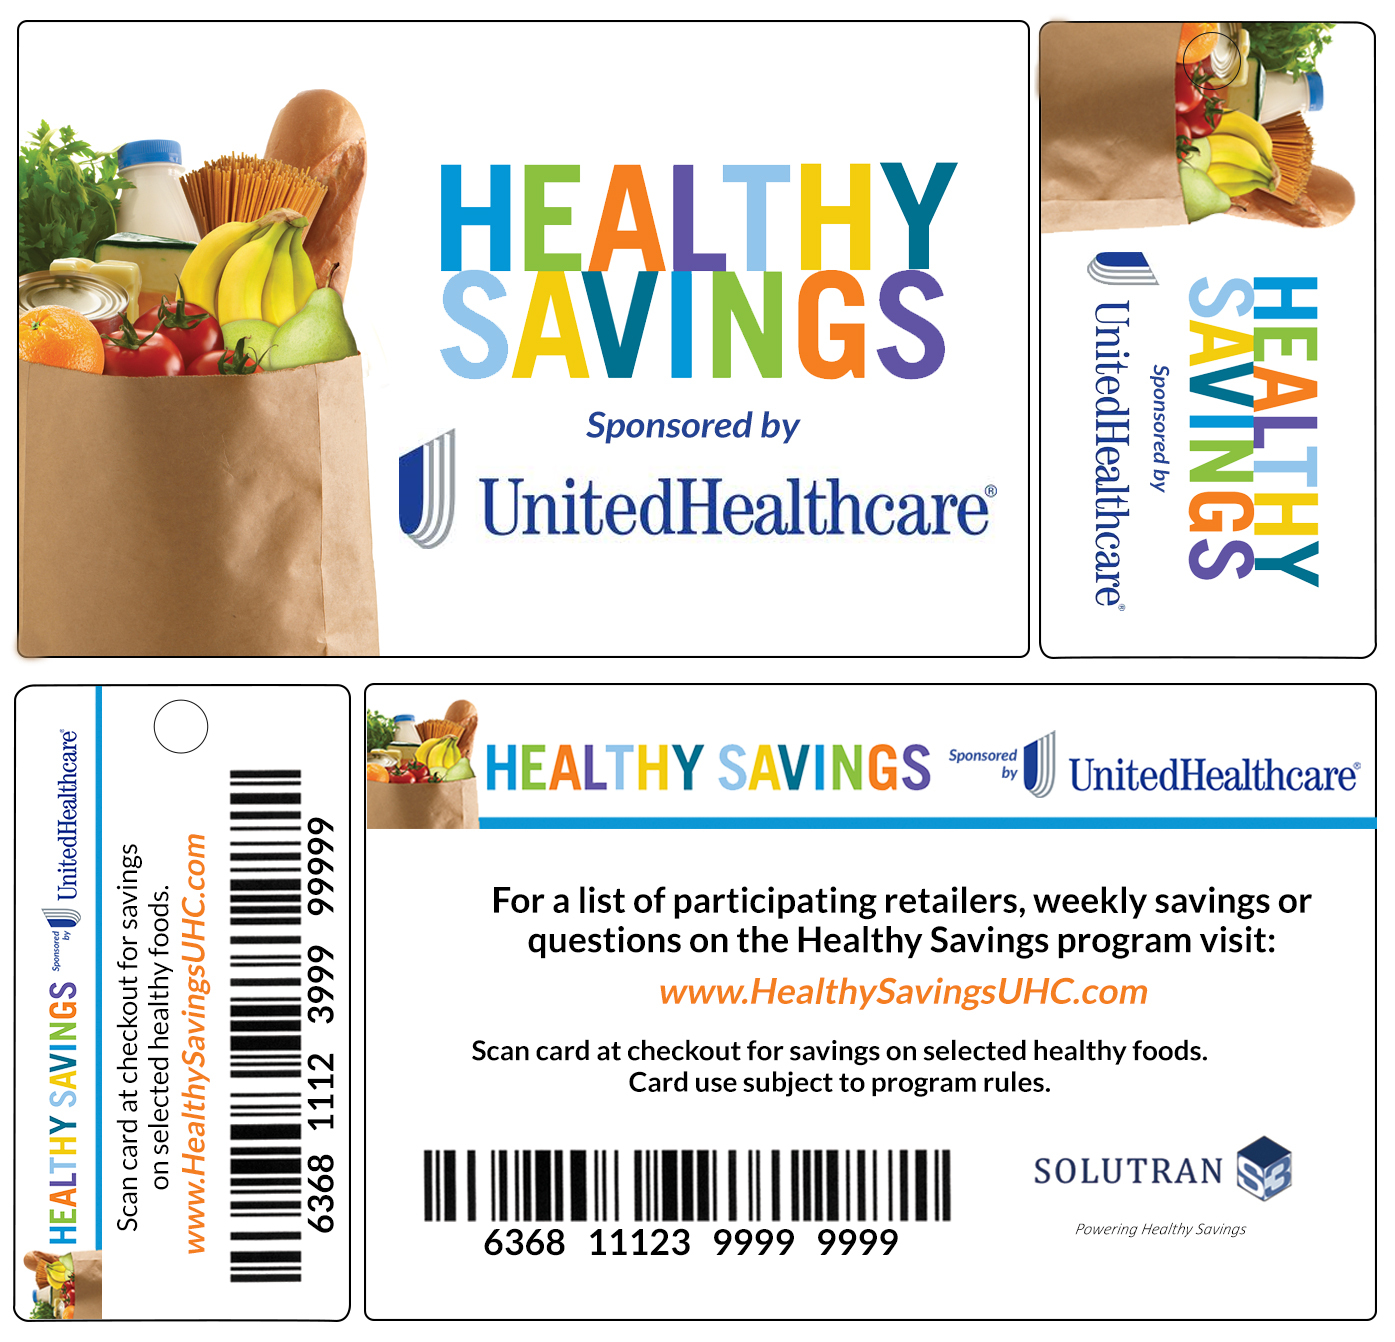 healthy savings makes nutritious foods more affordable for